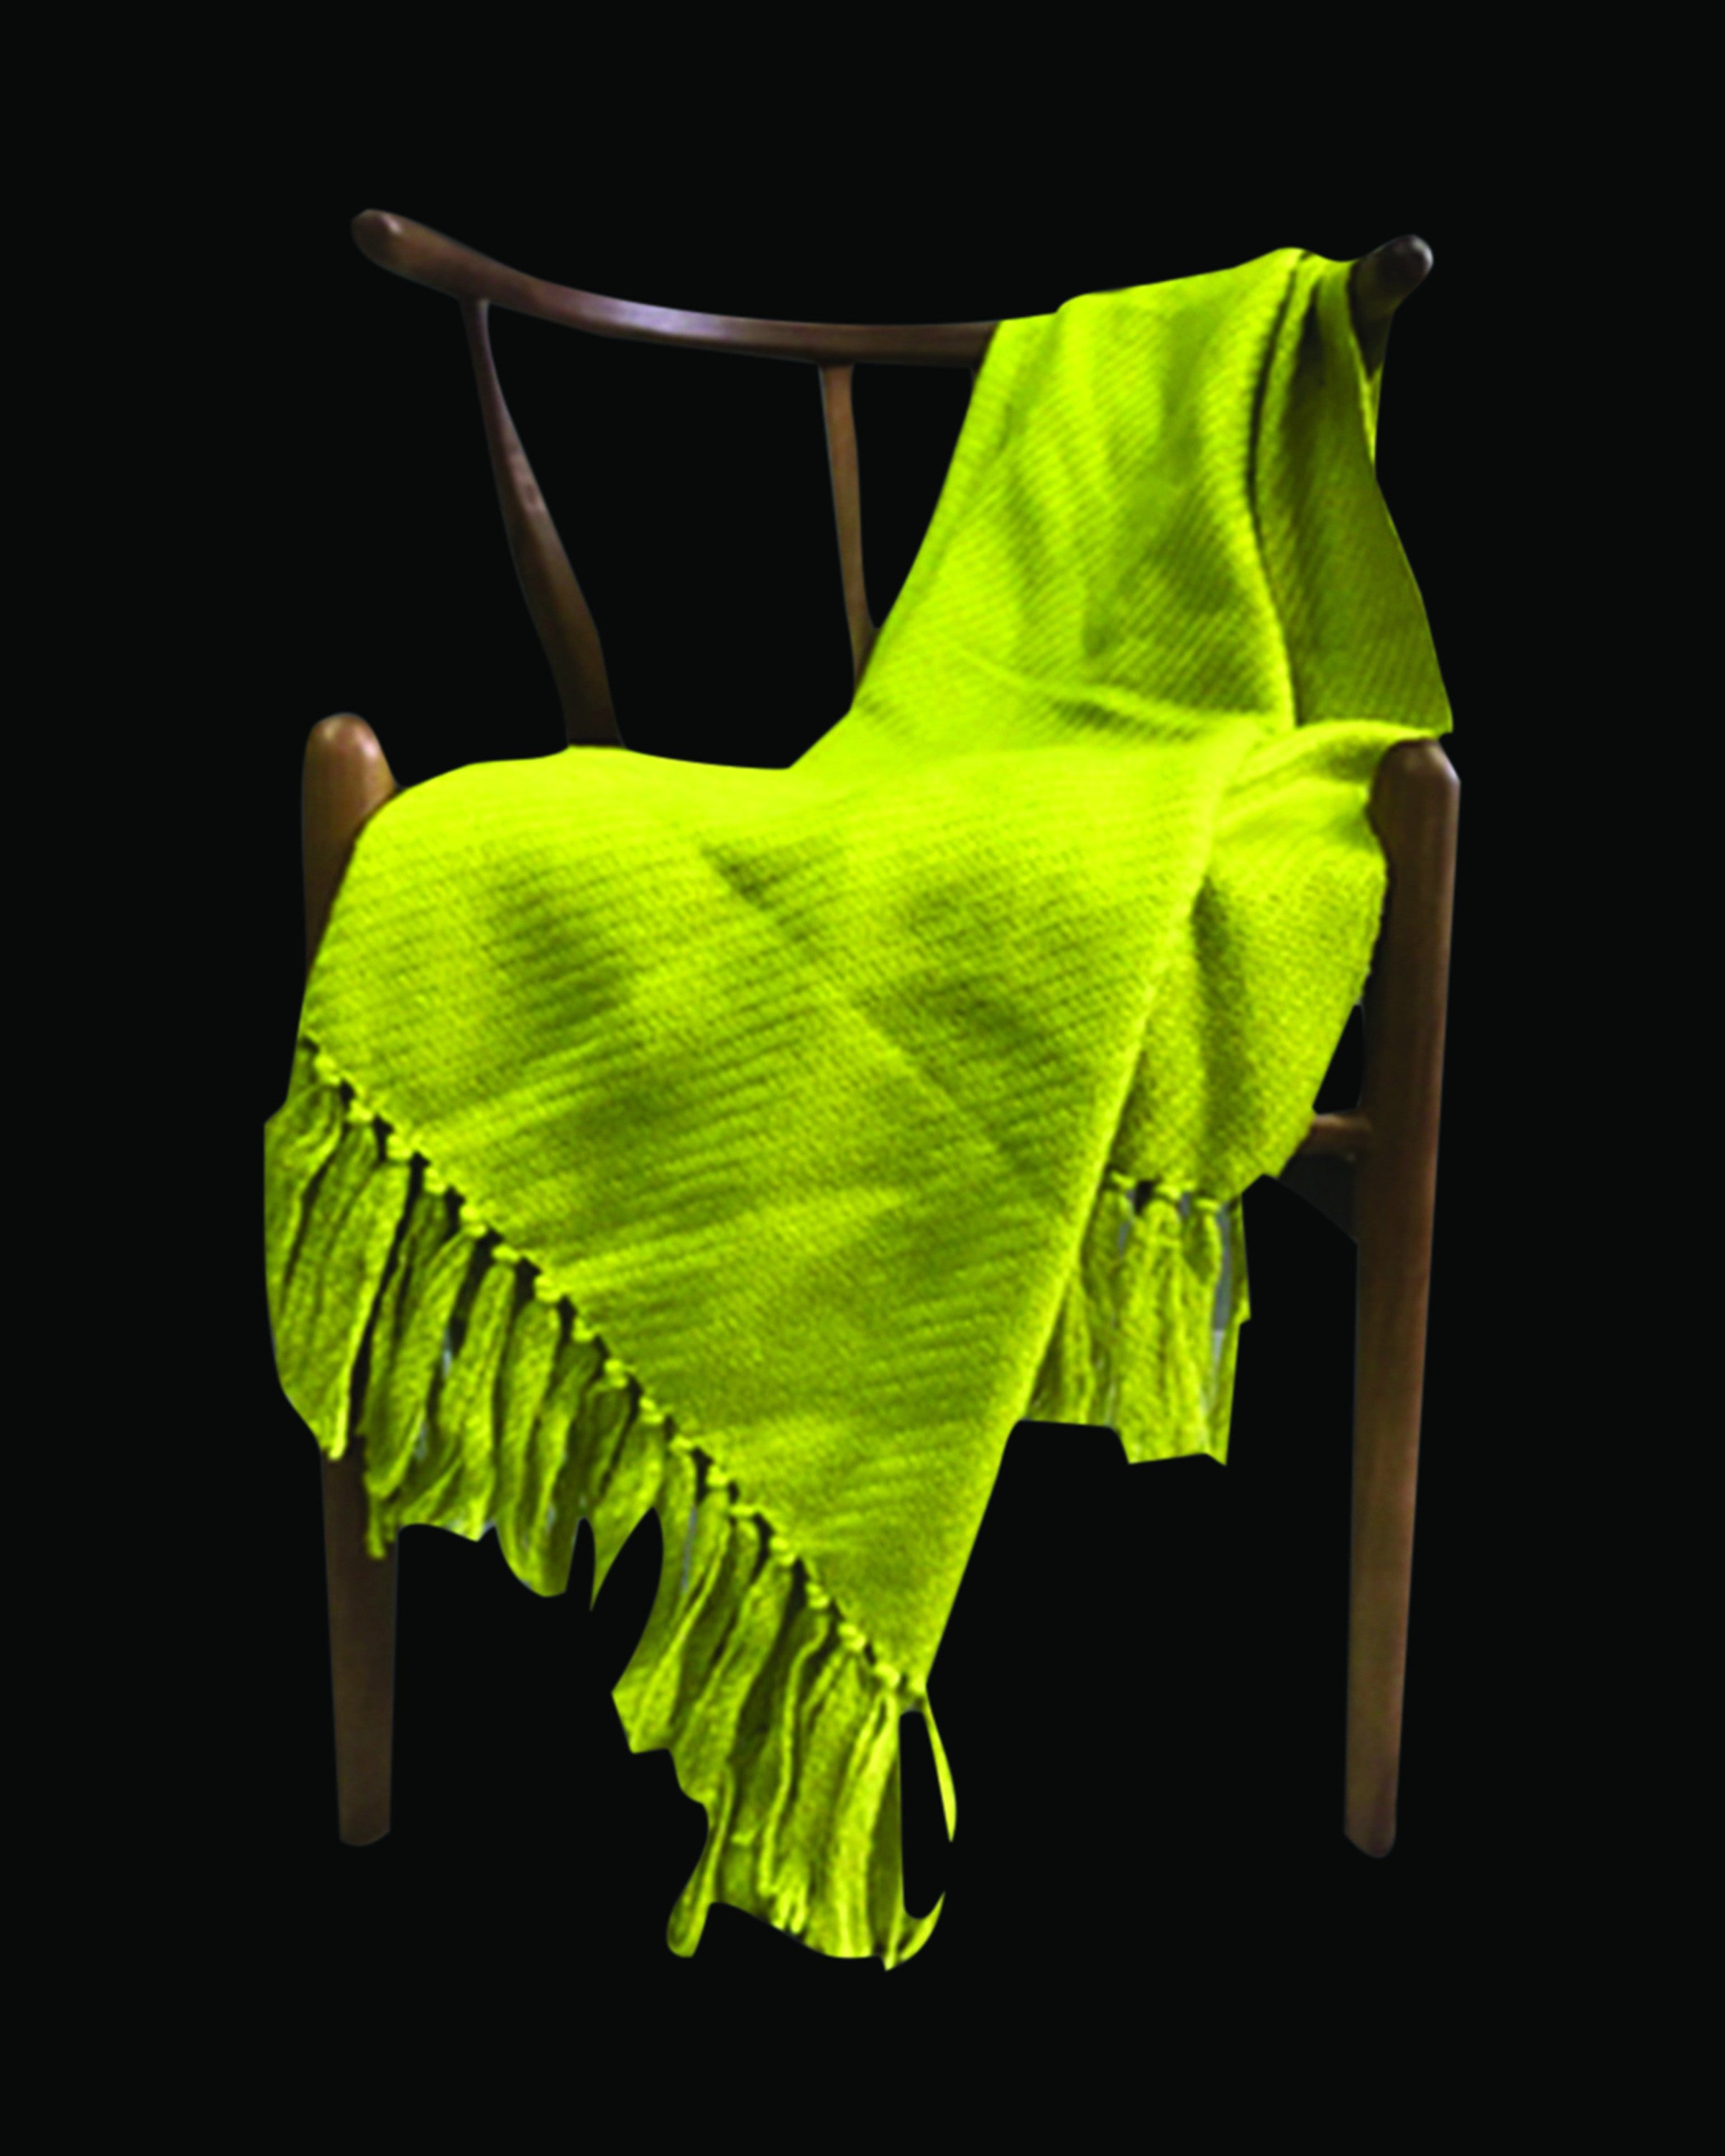 Luxury light green woolen throws & blankets | Angie Homes